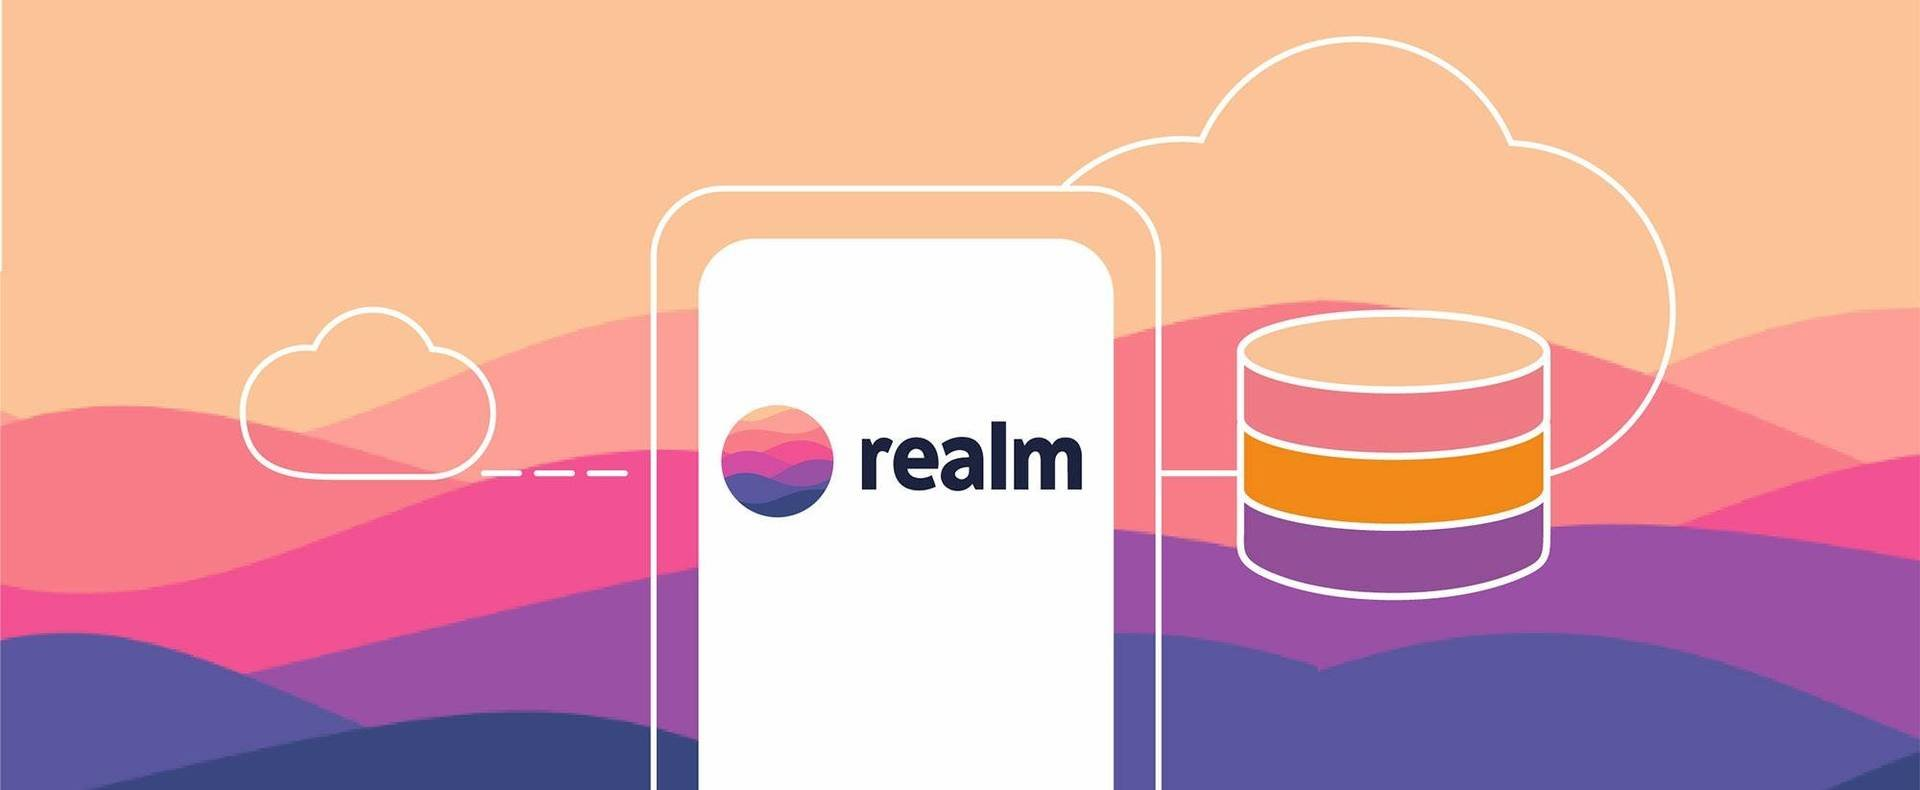 Erevena Assist Leading Open-Source Mobile Database, Realm, in Hiring SVP Worldwide Sales